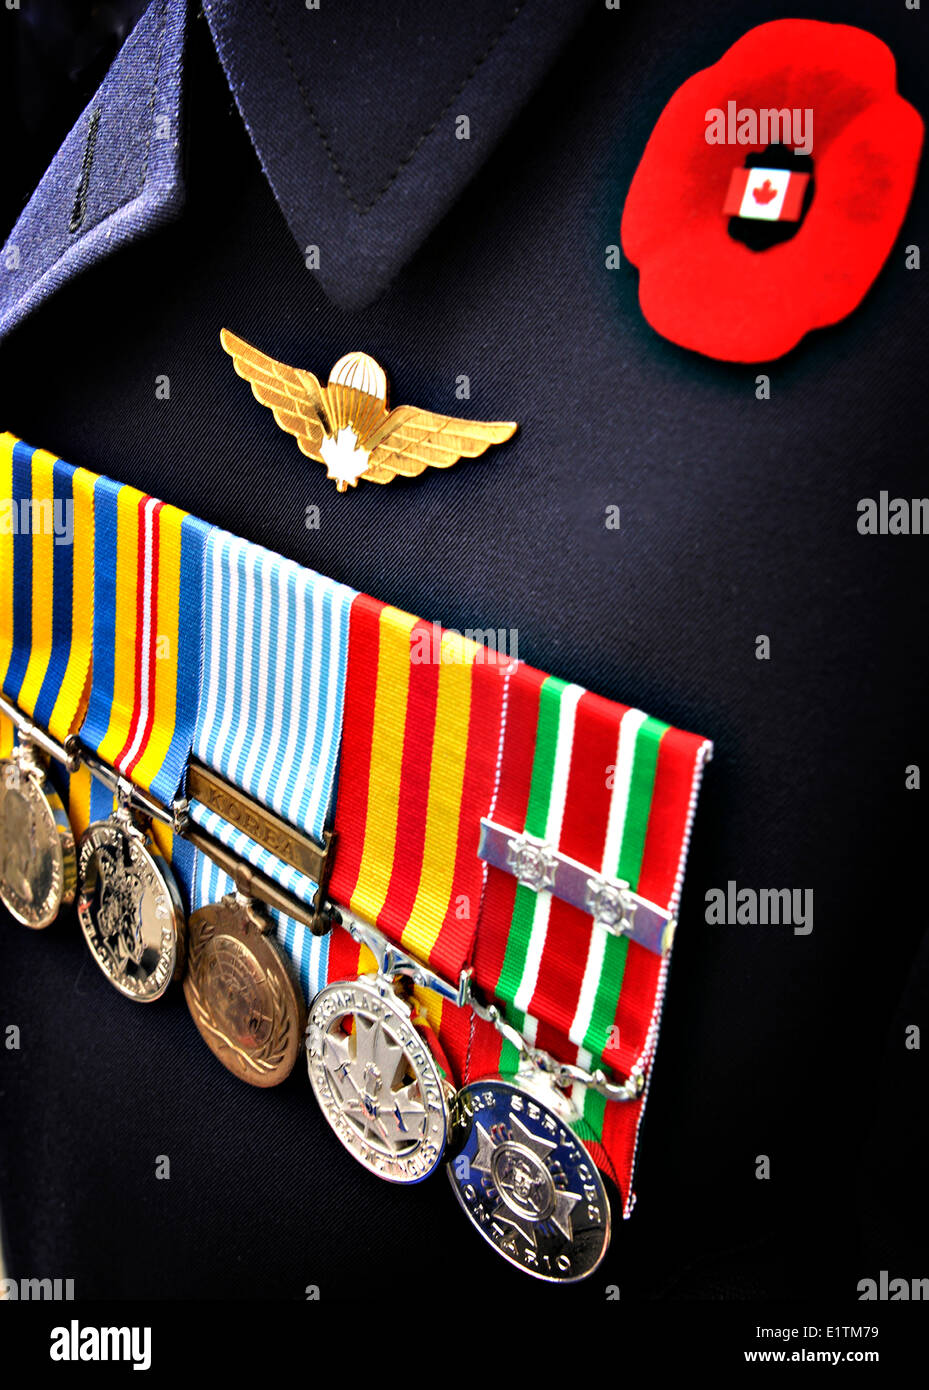 Veteran uniform on Rememberance Day with medals and rememberance day poppy, Canada - Stock Image